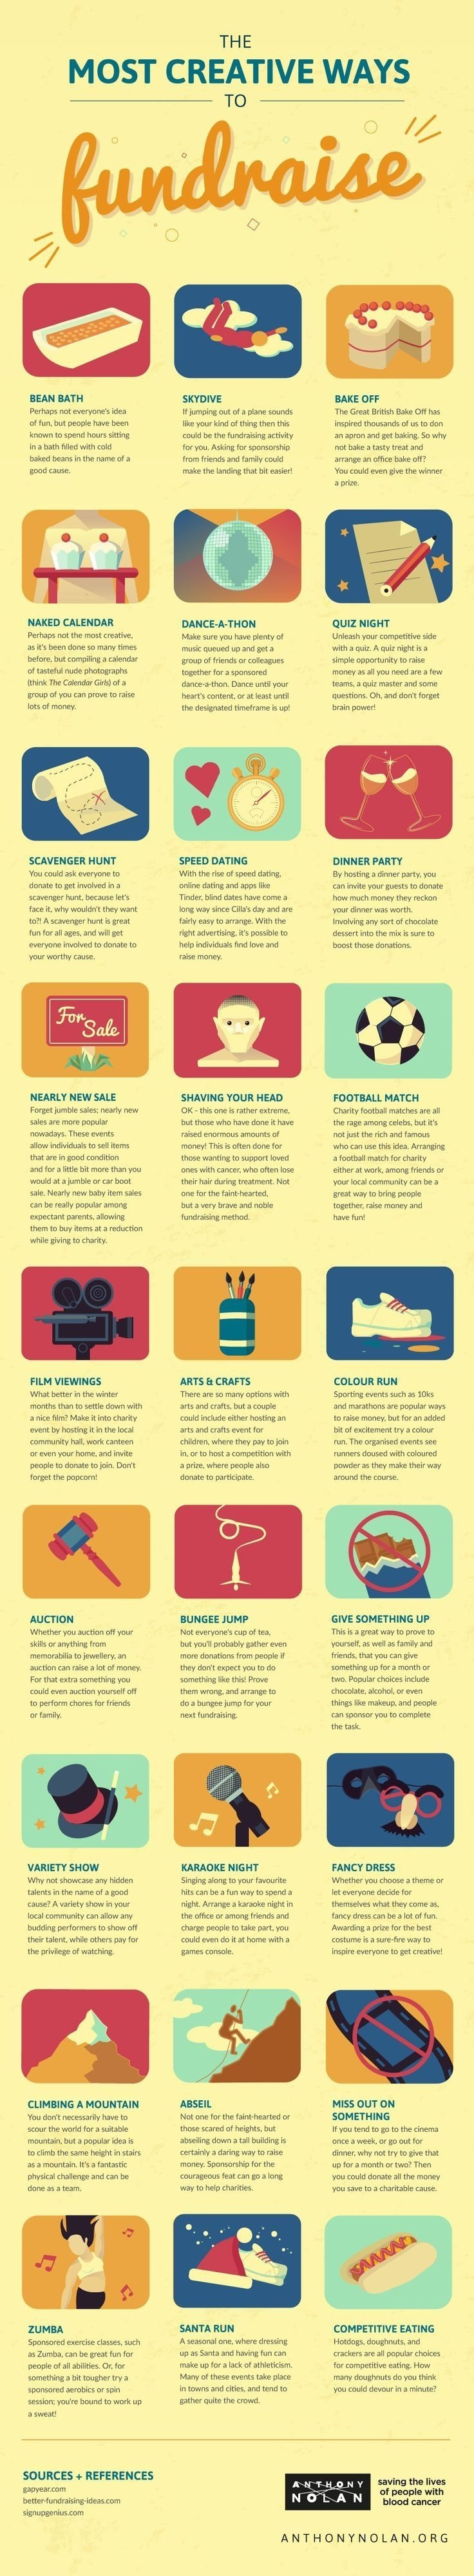 10 Awesome Easy Fundraising Ideas For High School 860 best fundraising ideas images on pinterest fundraising ideas 2